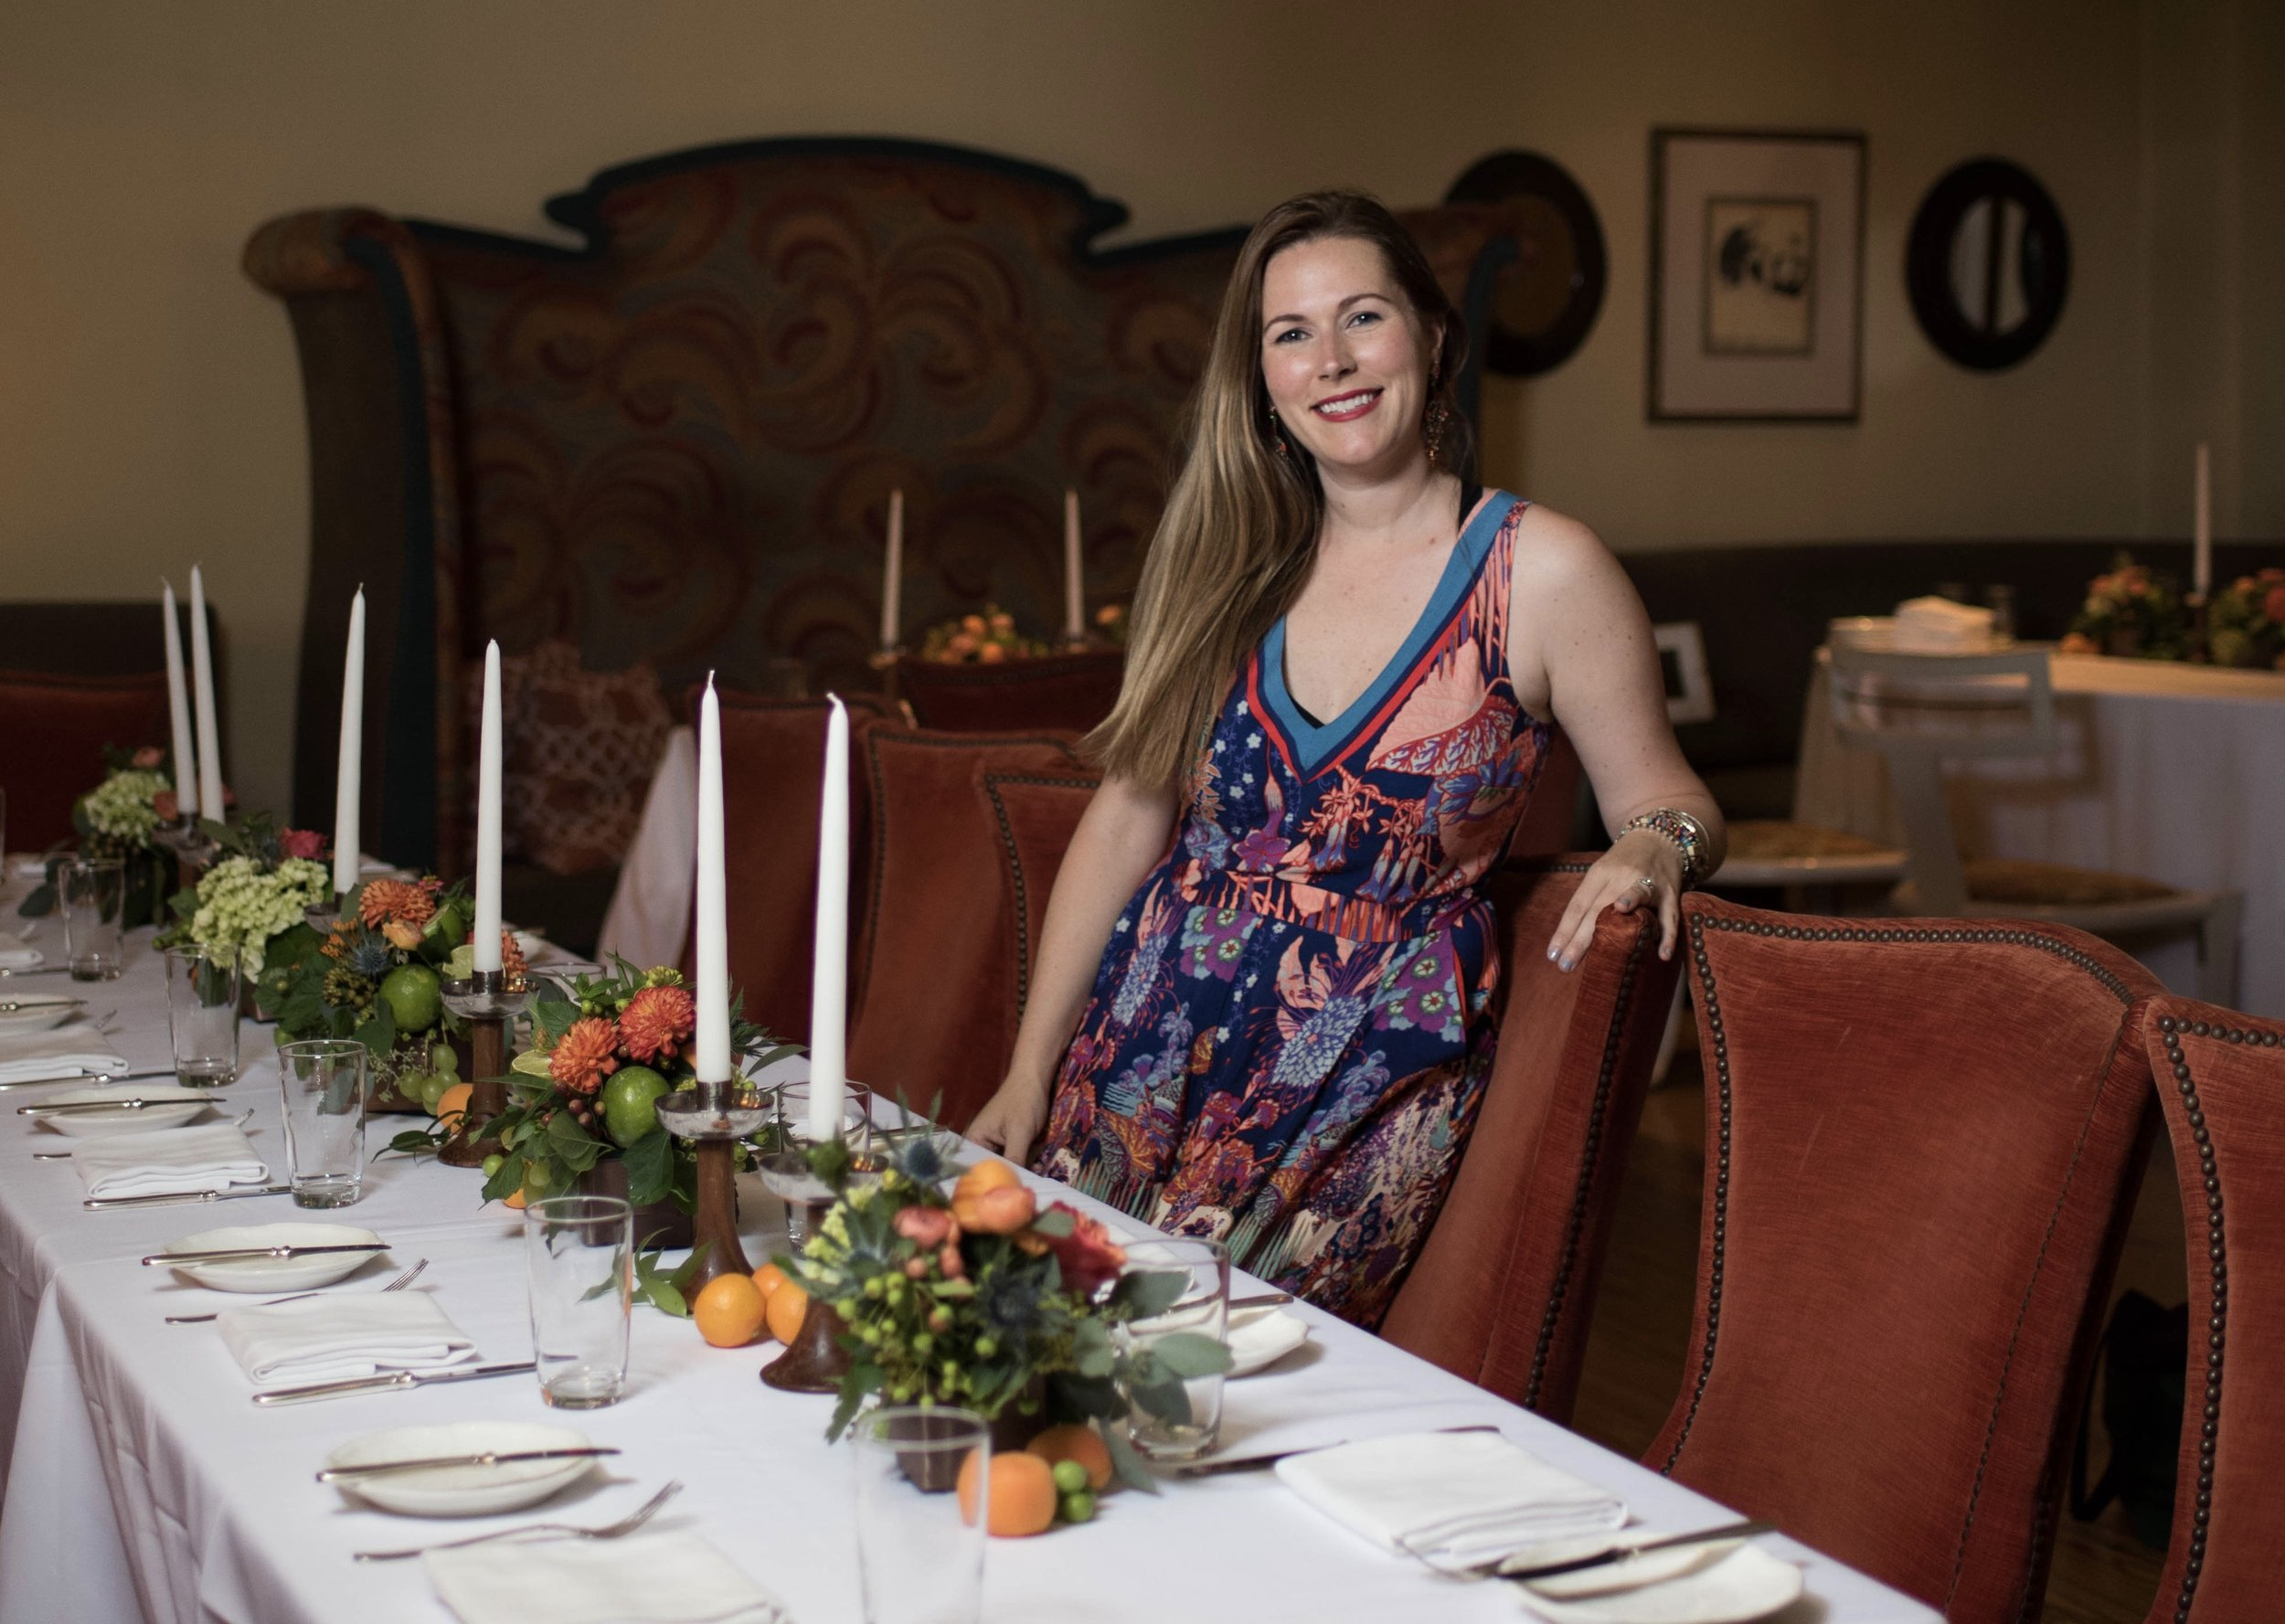 Photo me at   Restaurant Eve   by   Erin Tetterton